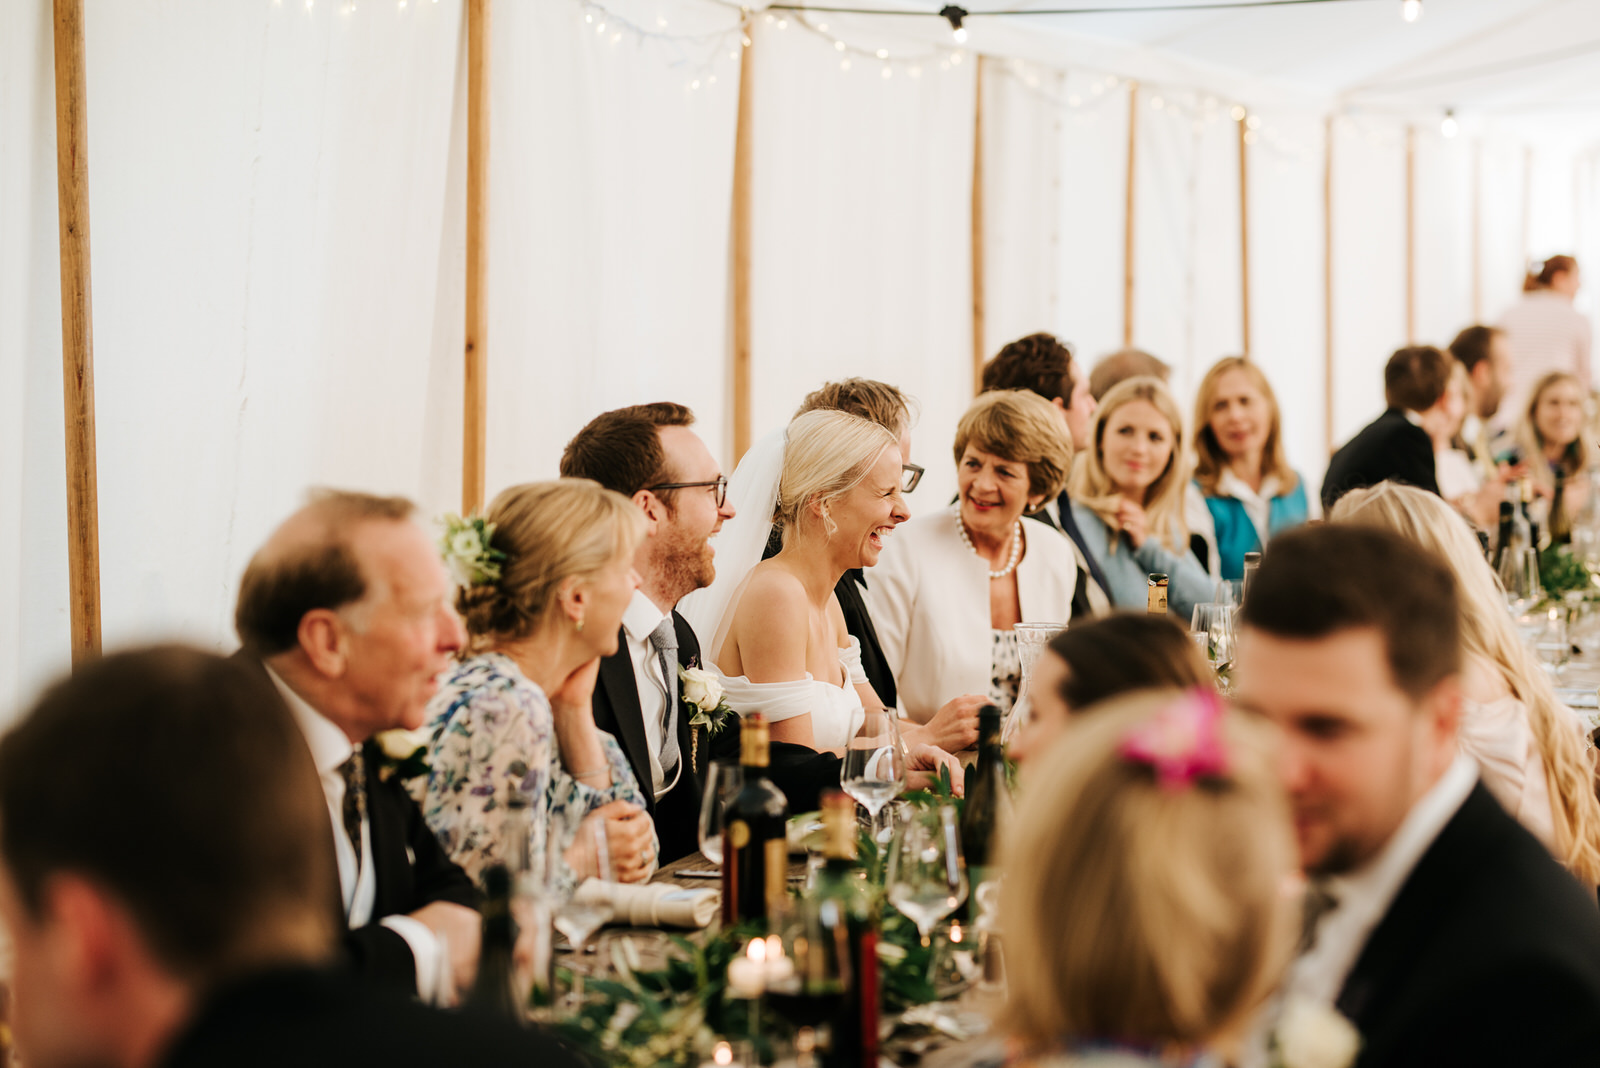 Wide photograph of the head table during the wedding breakfast with bride in the middle, in focus, smiling